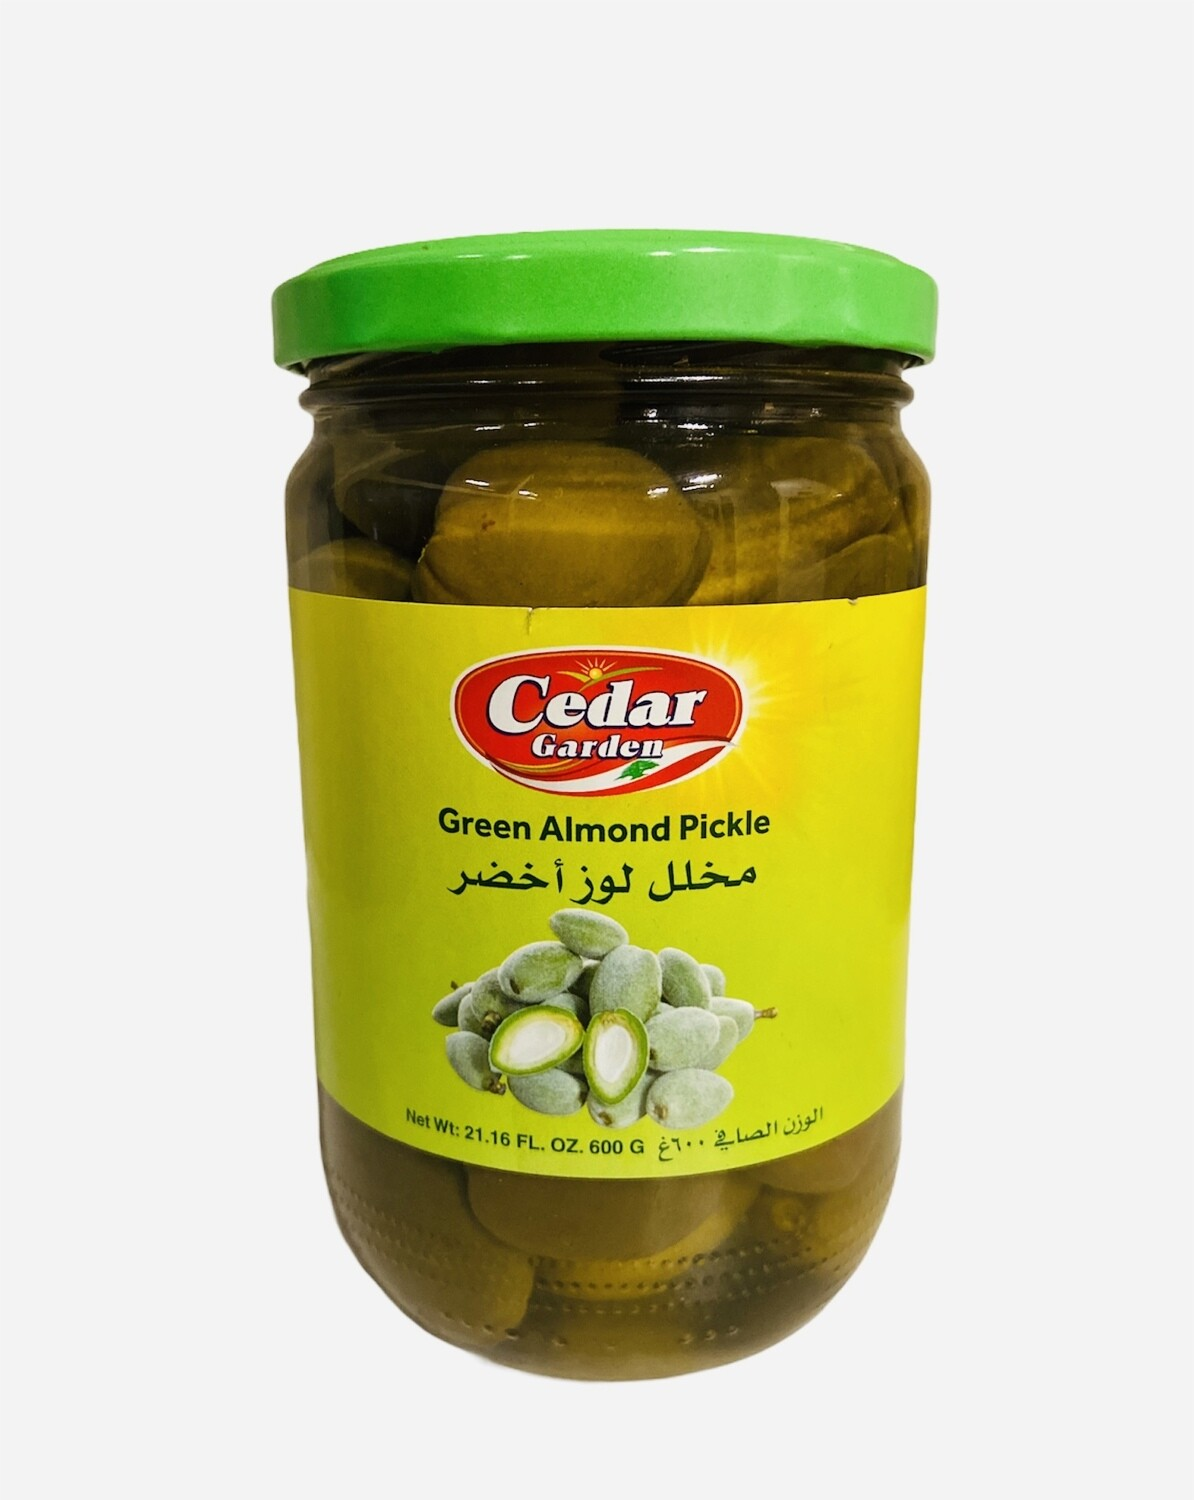 Cedar Garden Pickled Green Almond 12x600g